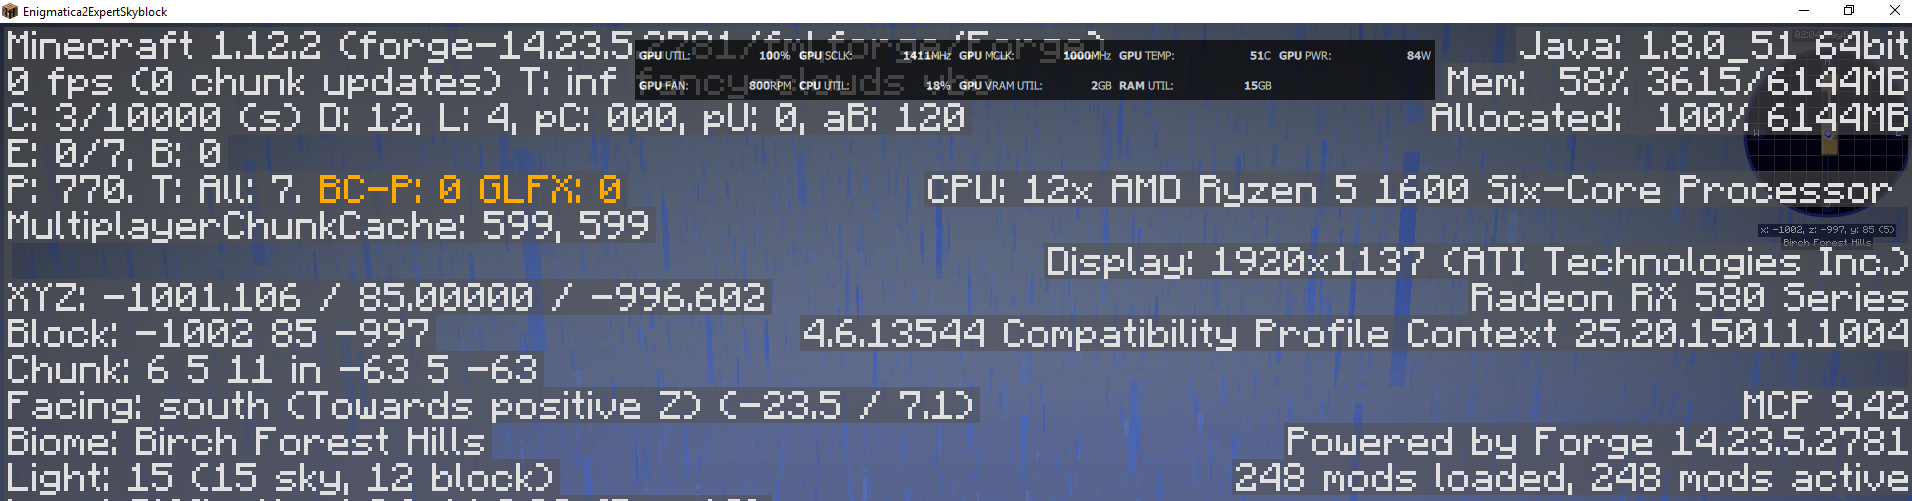 AMD Radeon Drivers (18 8 1 and higher) bring Minecraft with